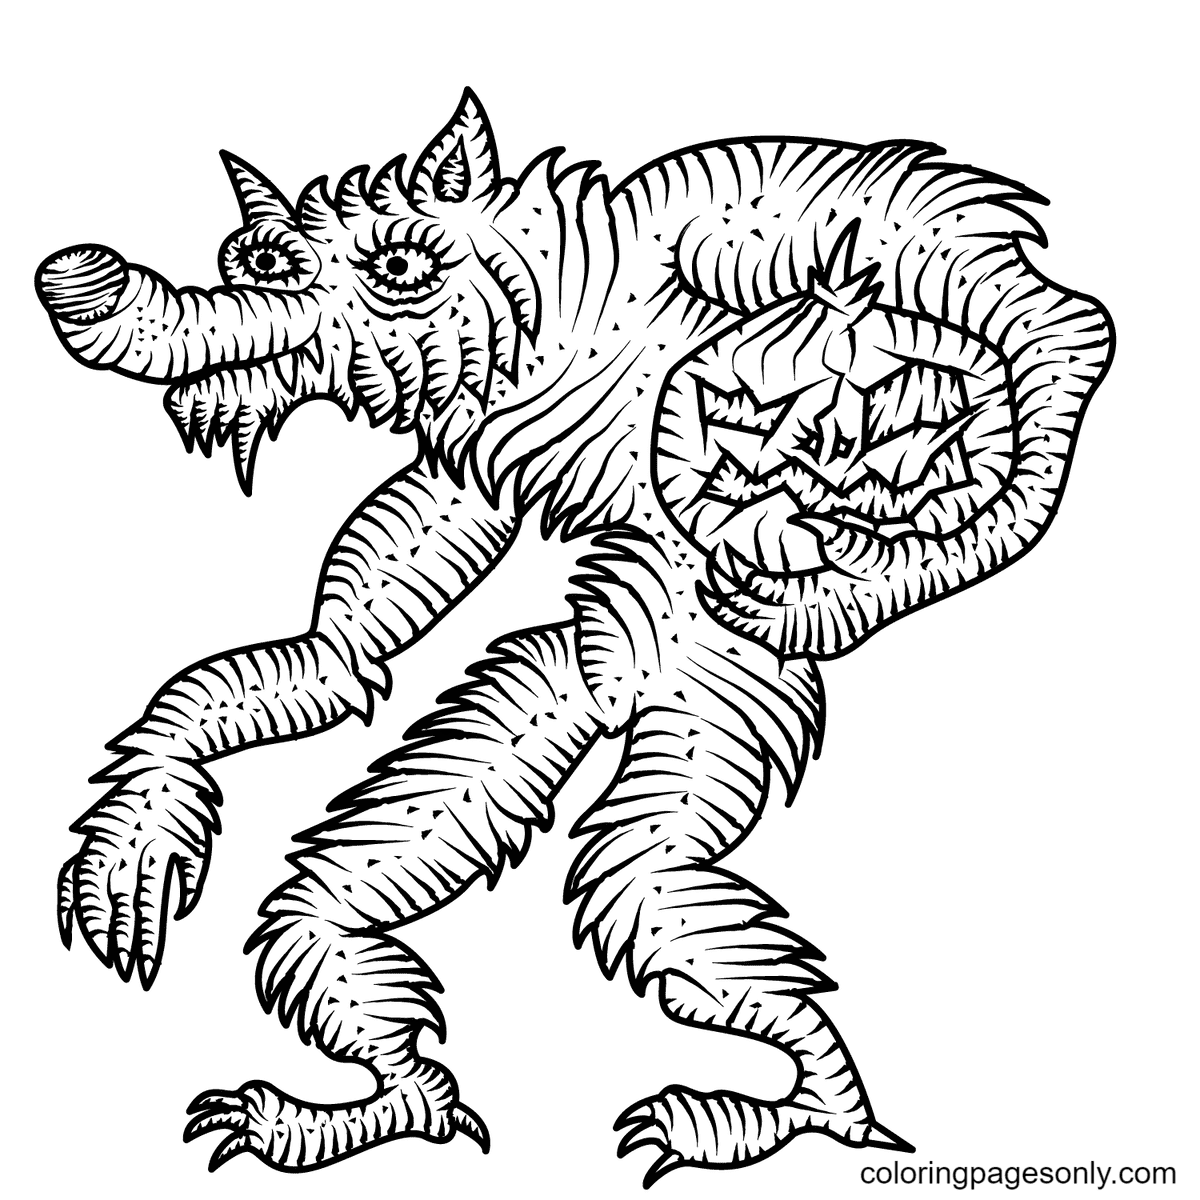 Werewolf with Jack-o'-Lantern Coloring Page